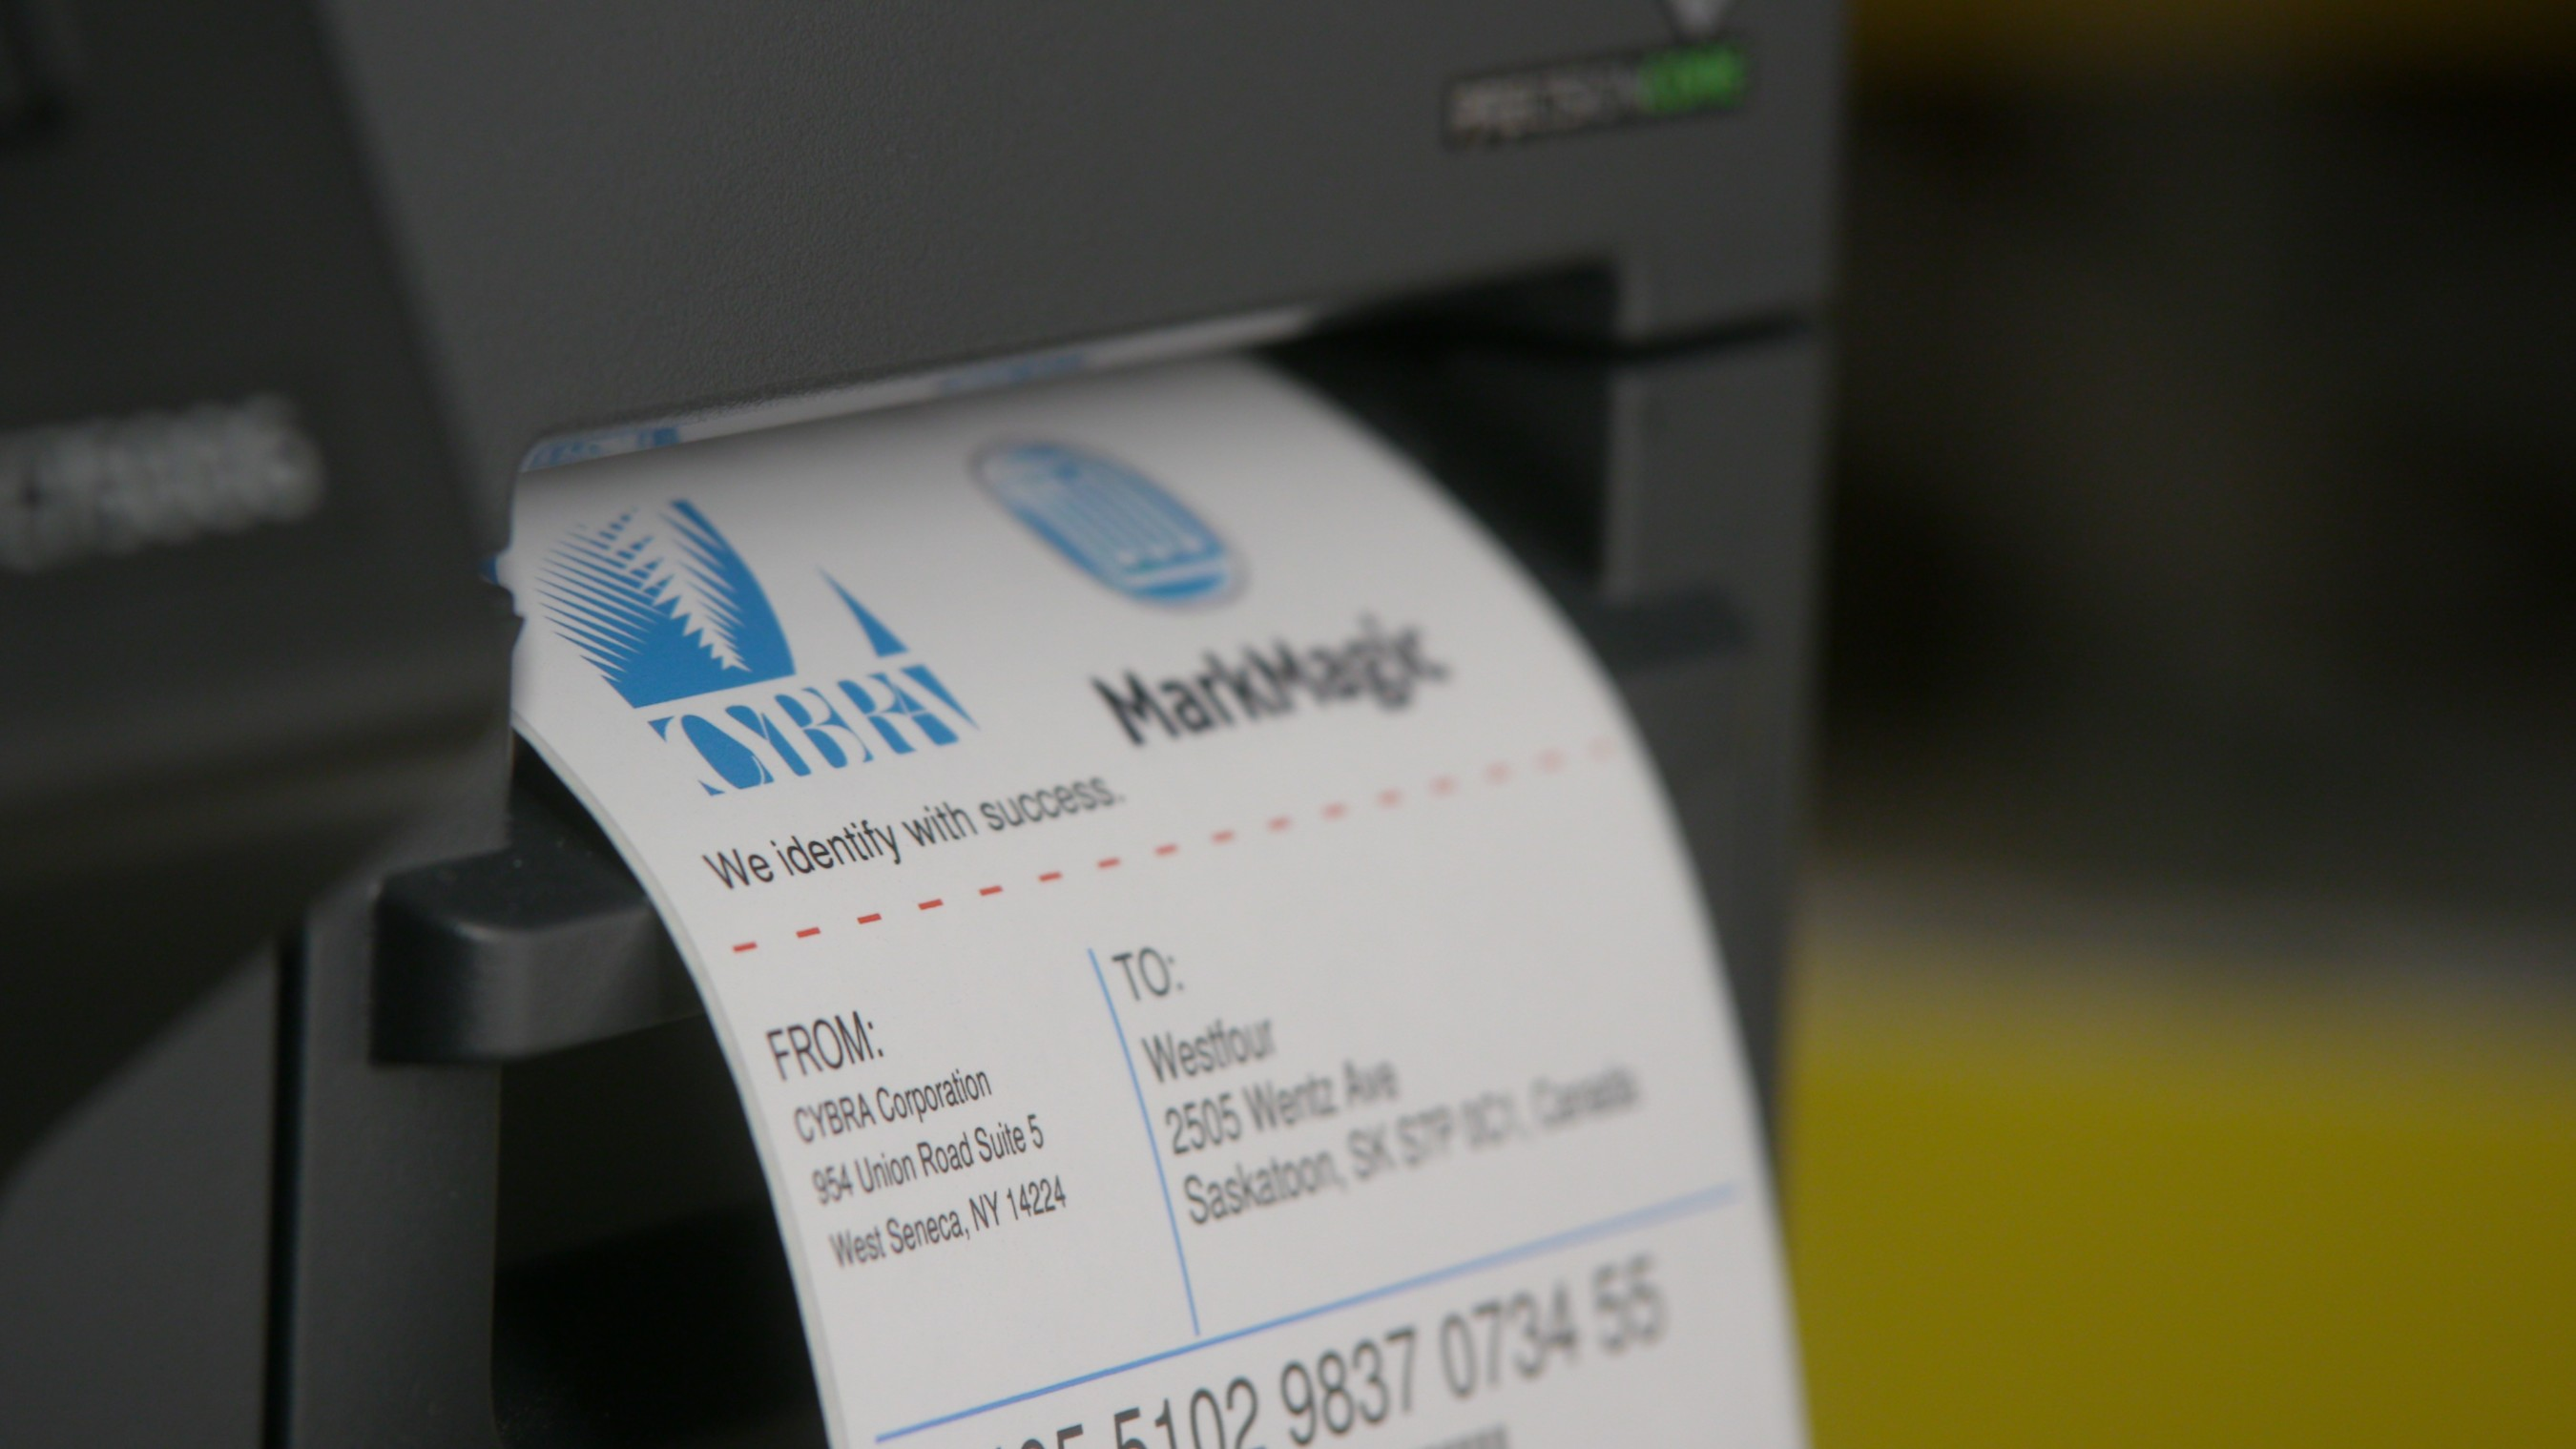 With the Epson ColorWorks C7500G printer, custom color labels are quickly created, which can help reduce waste and save on costs